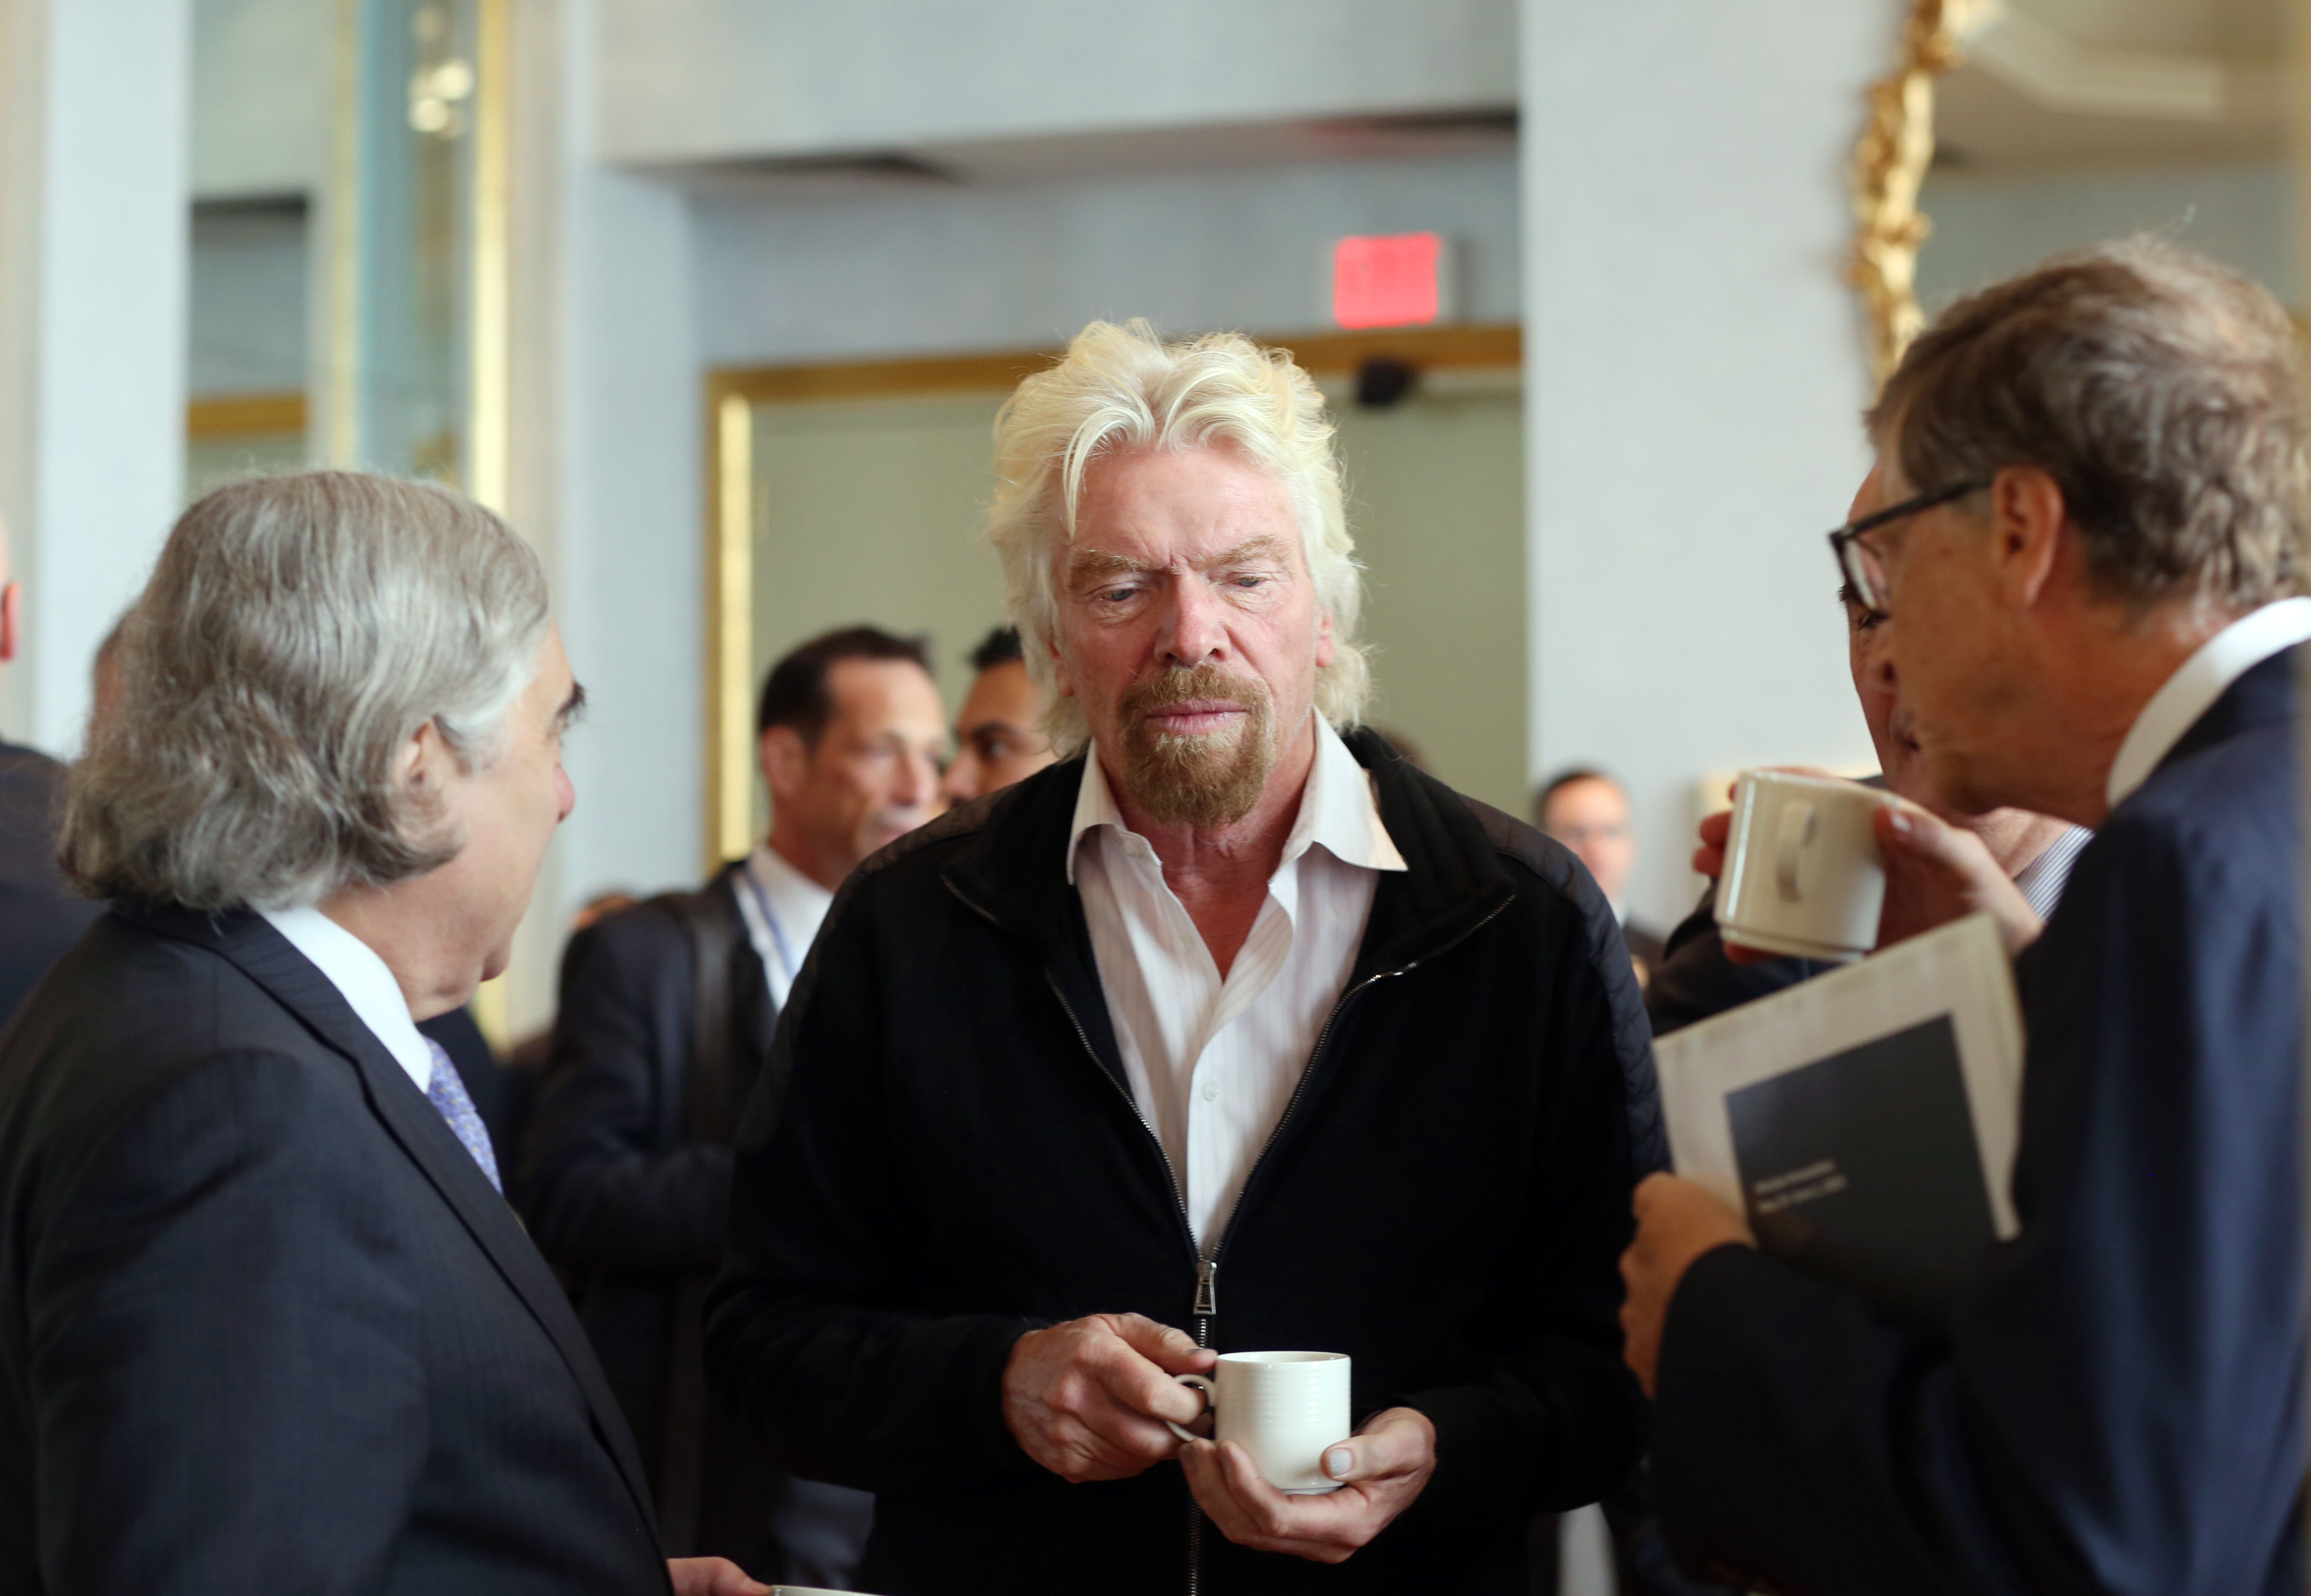 Richard Branson and Bill Gates at Mission Innovation clean energy breakfast